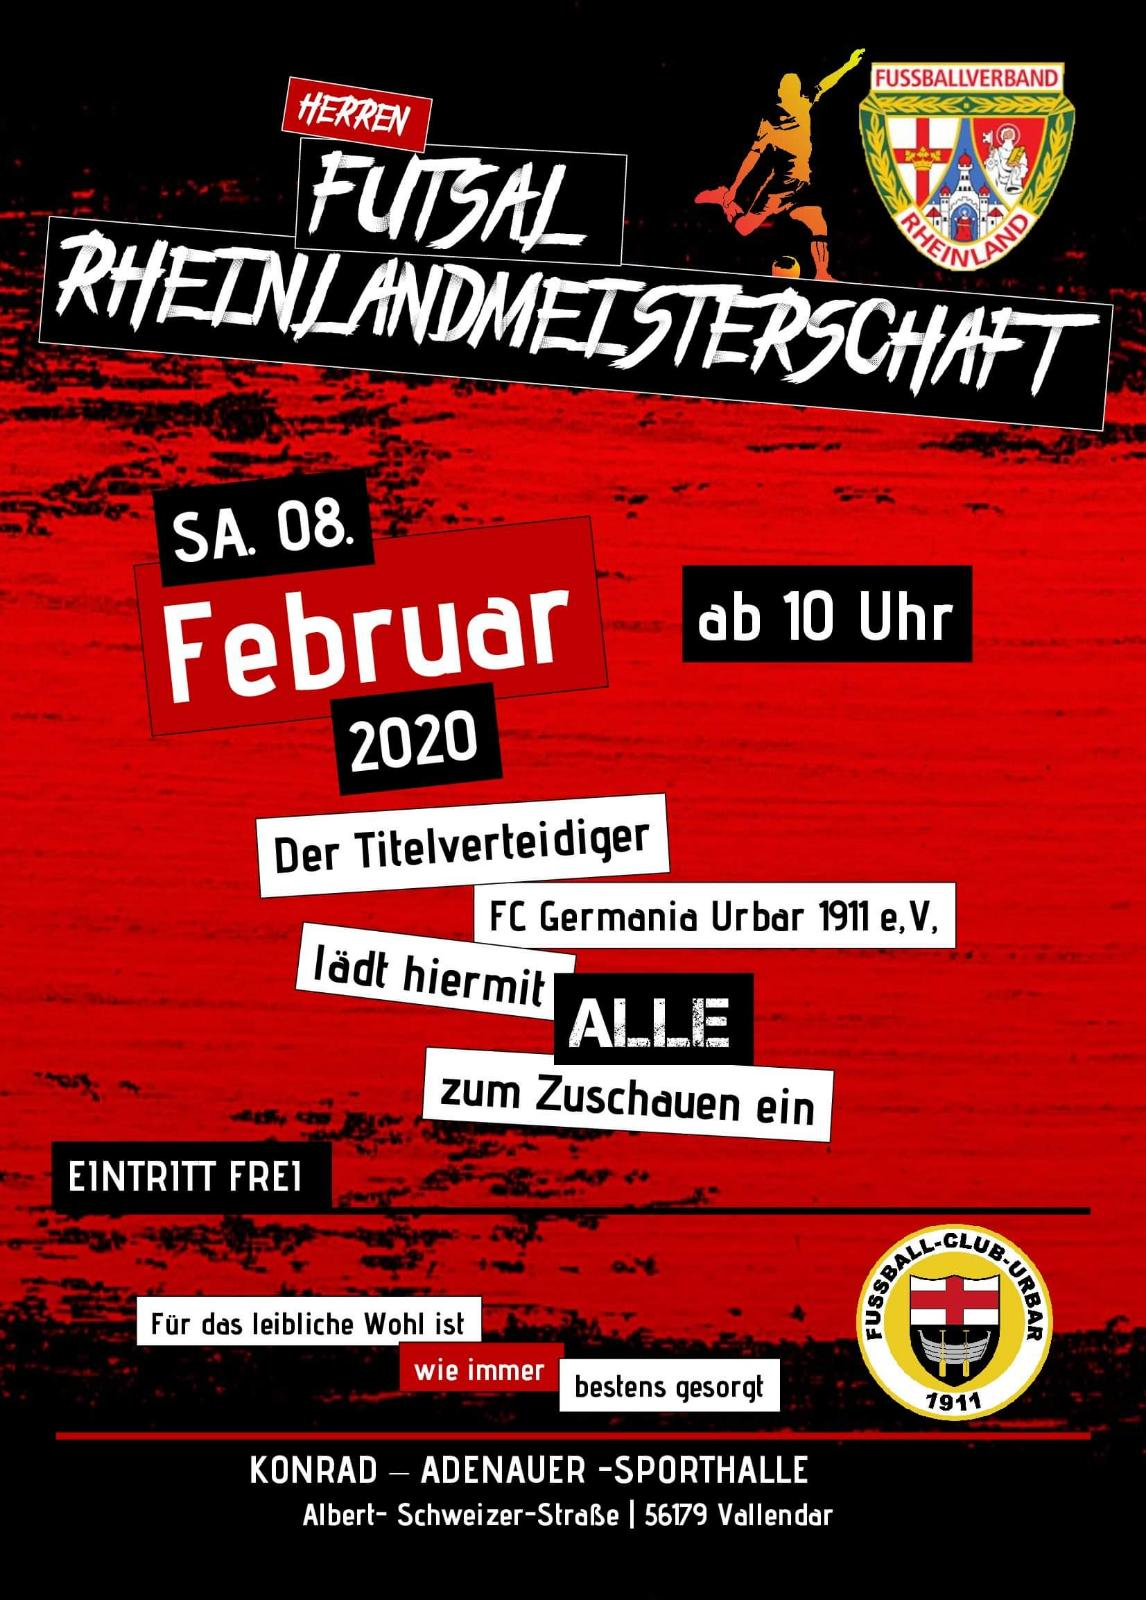 Futsal-Rheinlandmeisterschaft 2020 in Vallendar